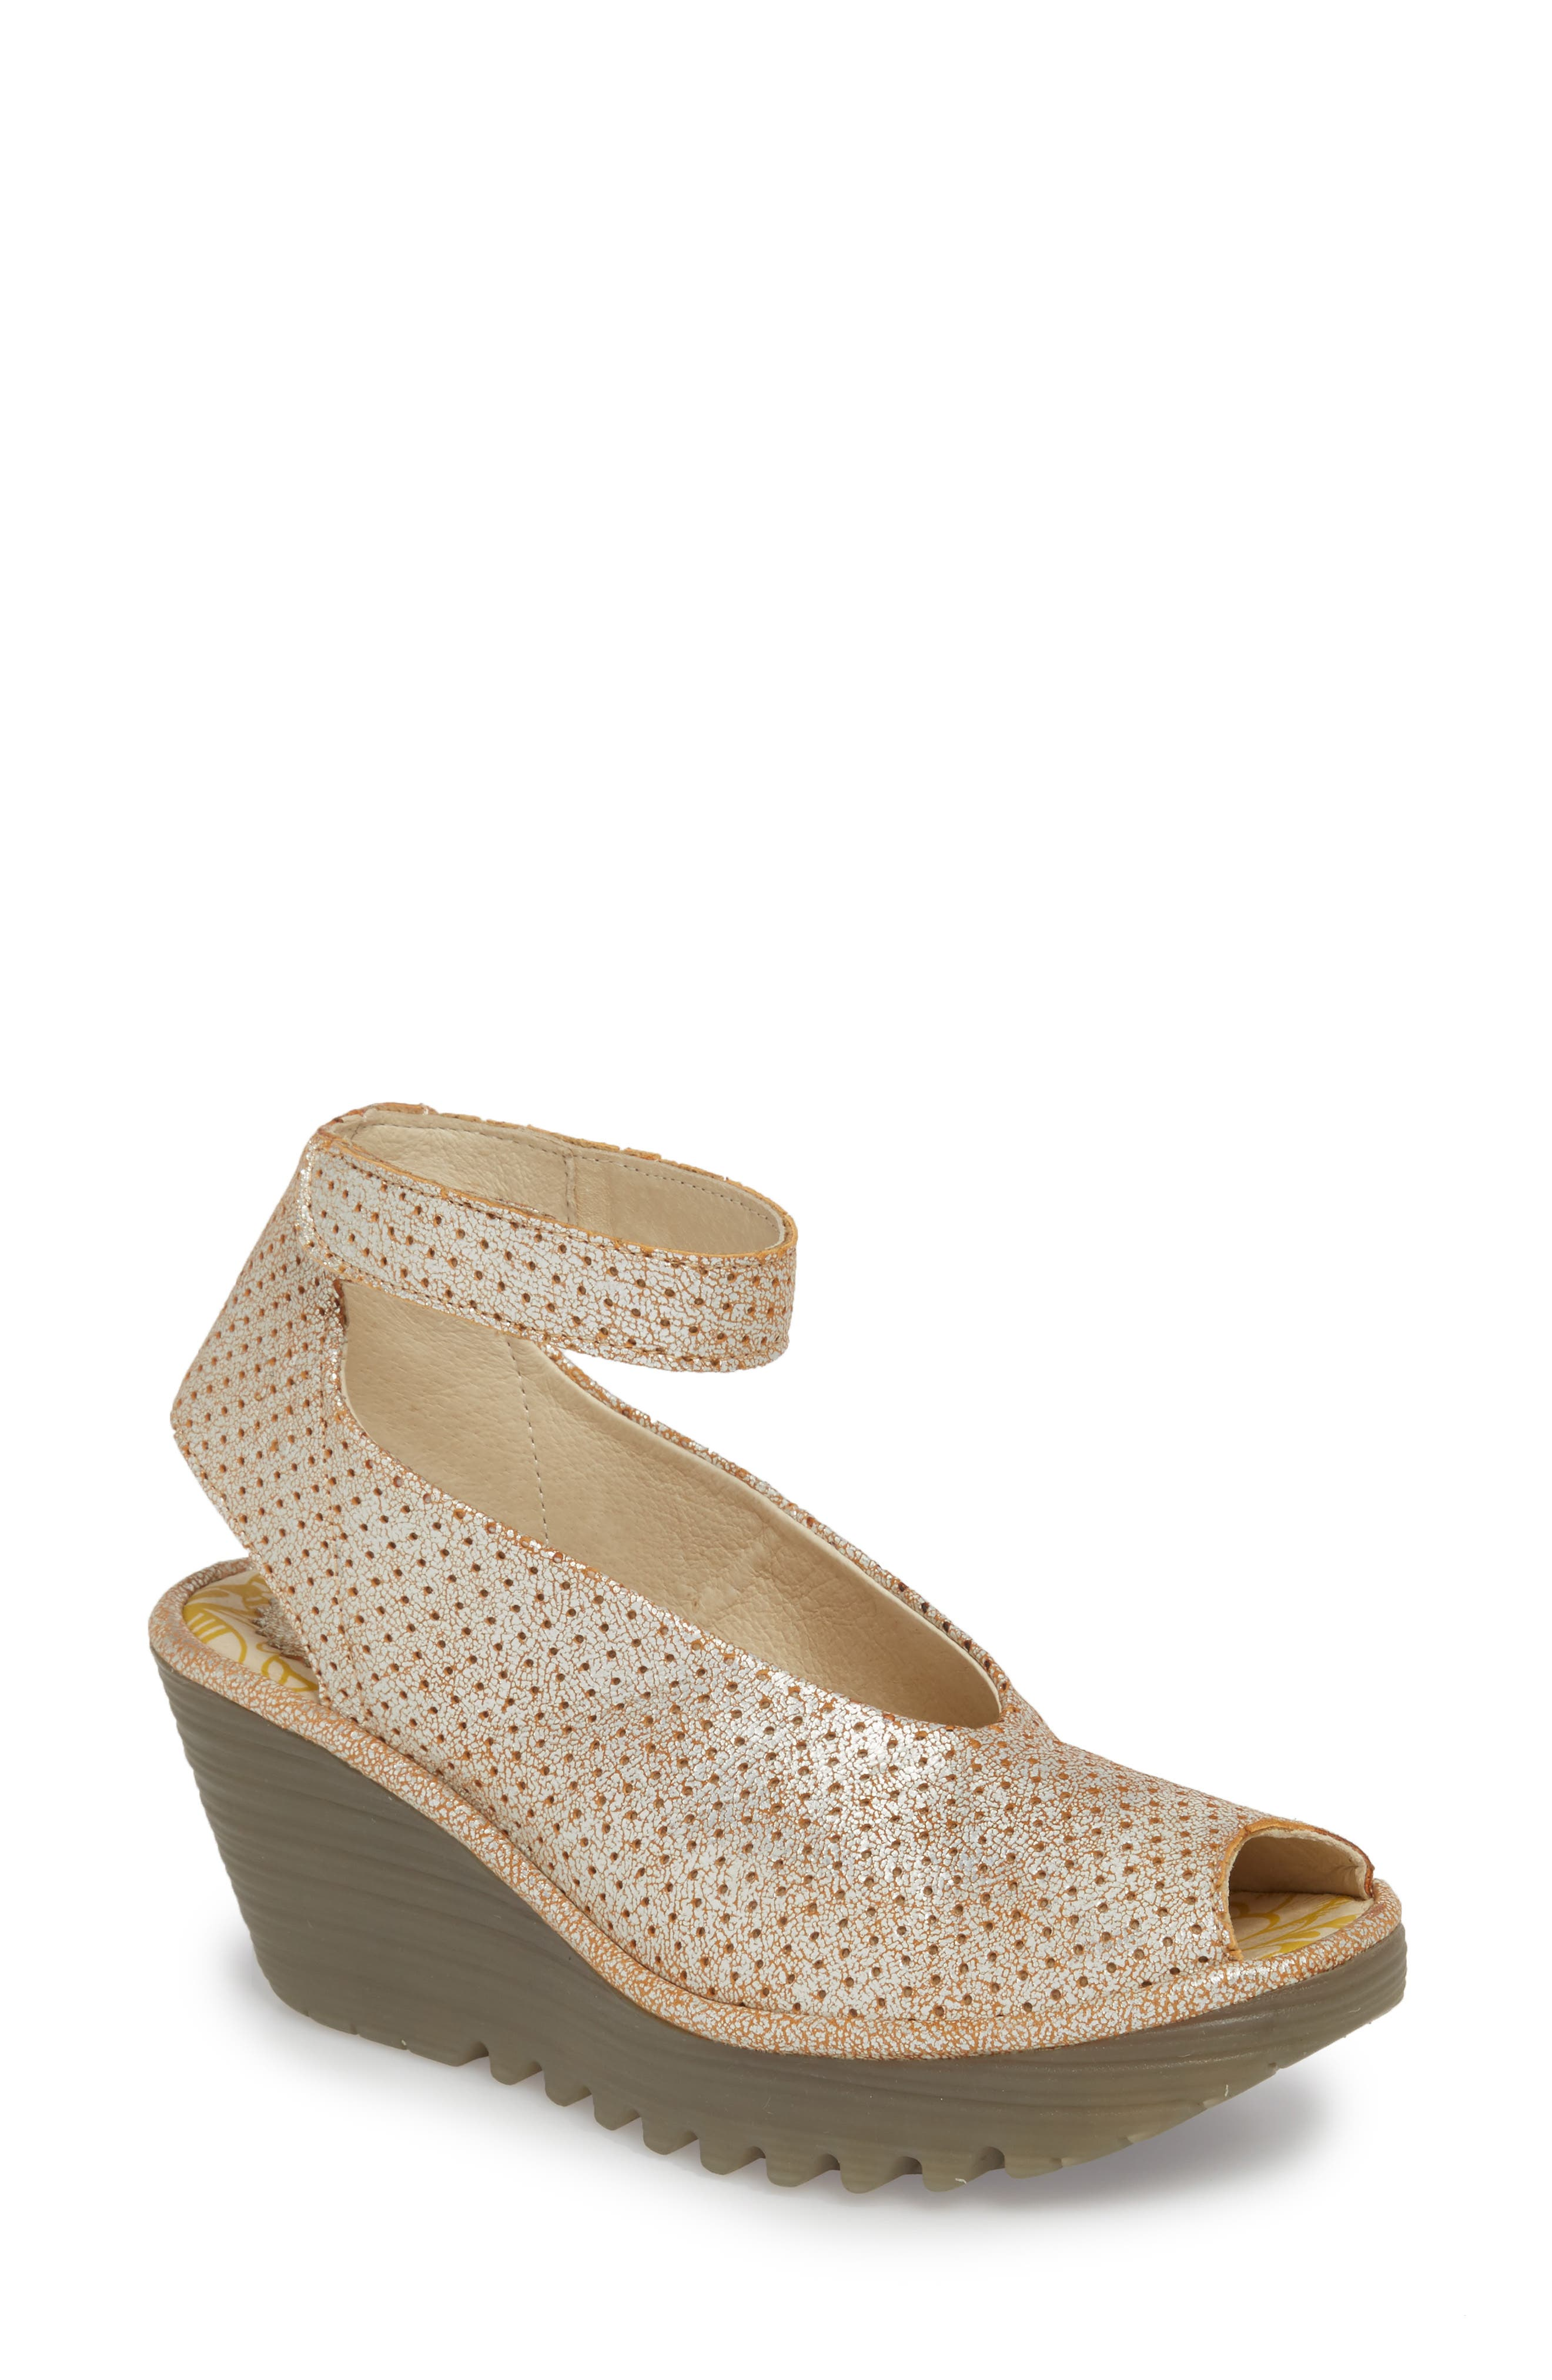 FLY LONDON 'Yala' Perforated Leather Sandal, Main, color, PEARL COOL LEATHER